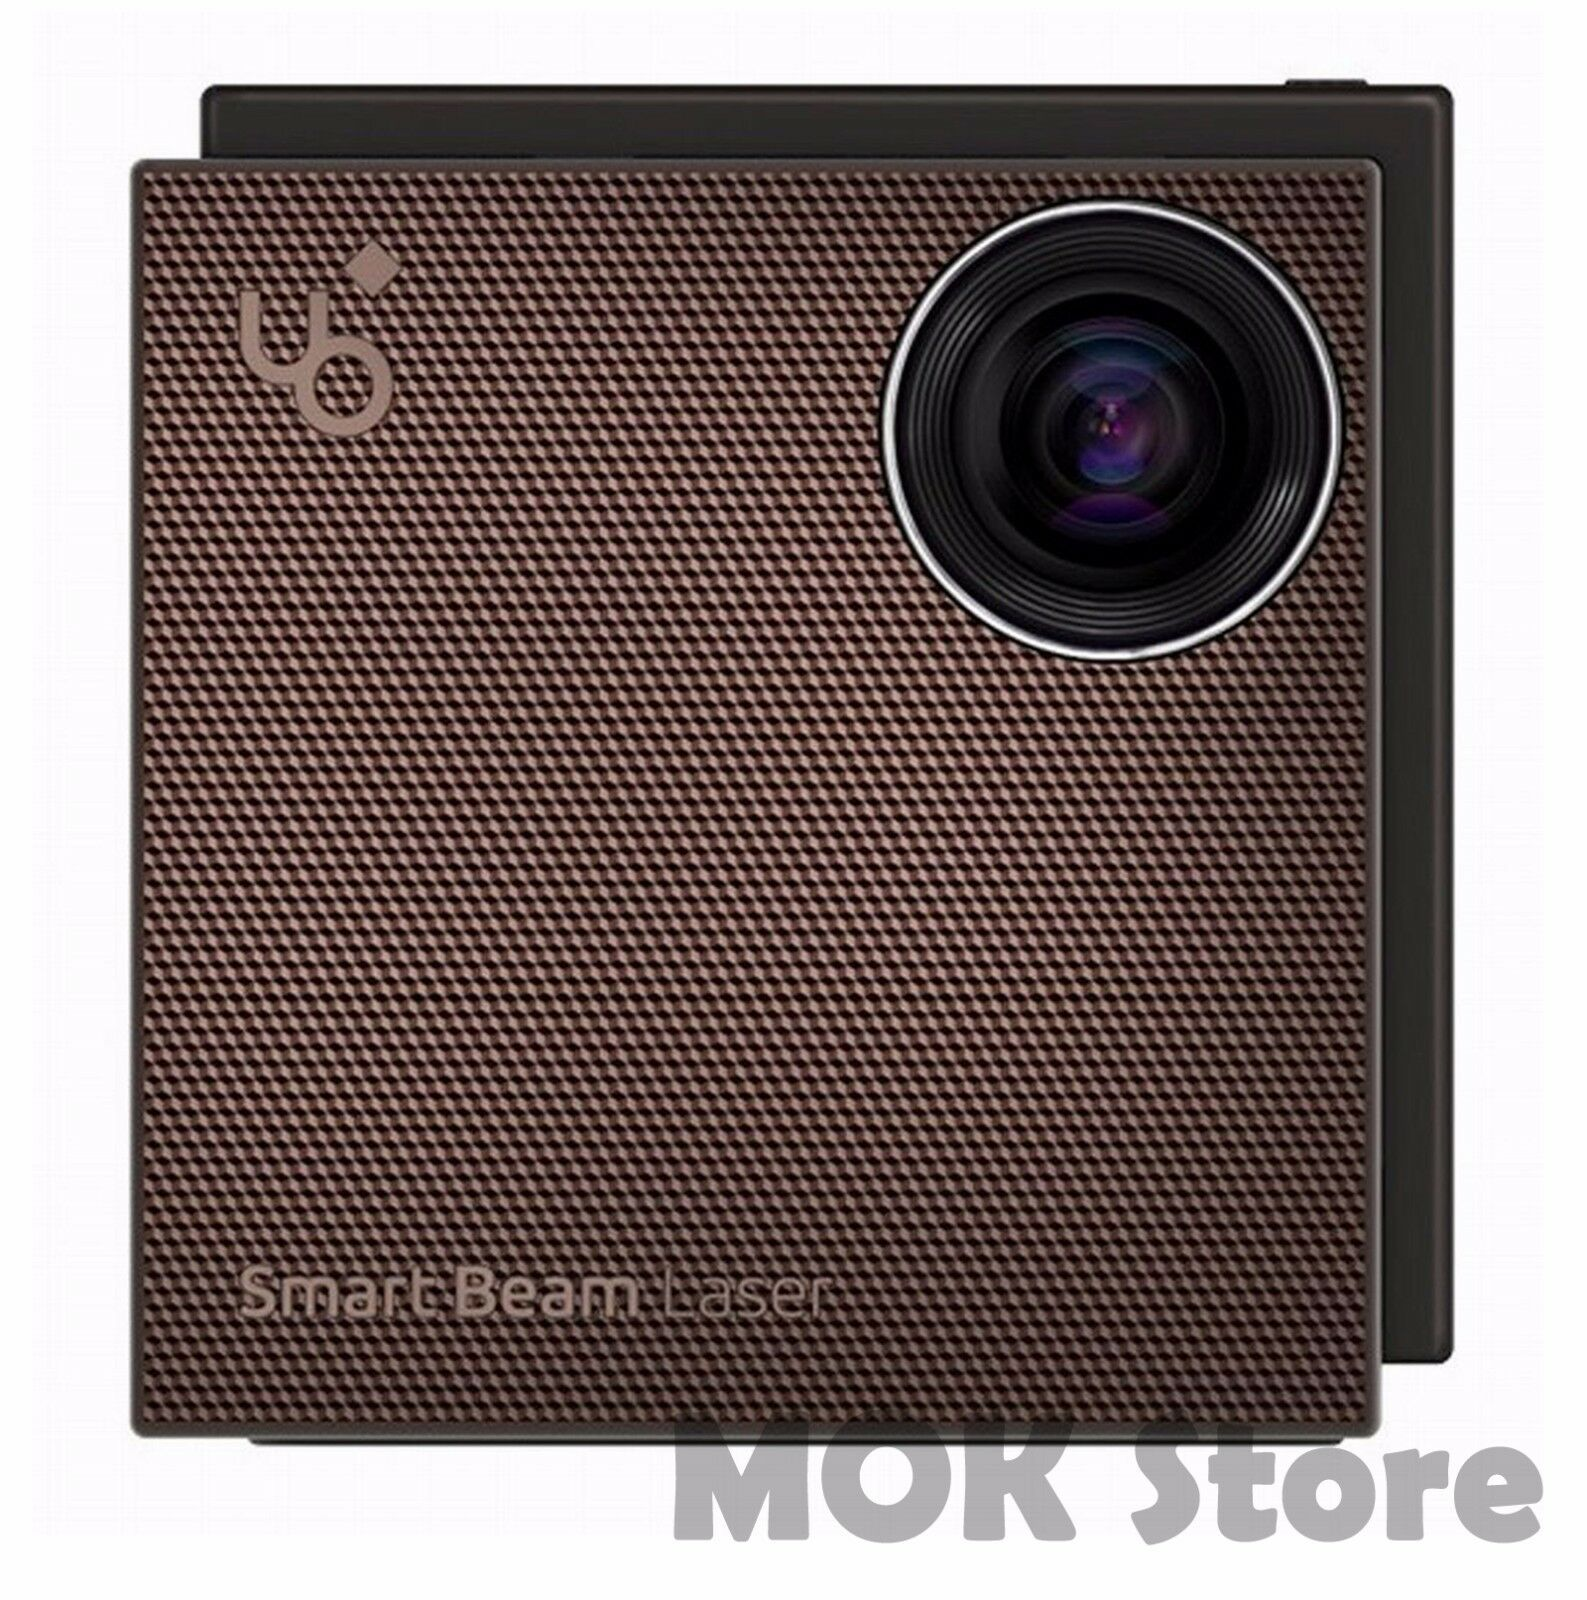 Sk uo smart beam laser mini pico projector nx lb kh6cb for Miniature projector